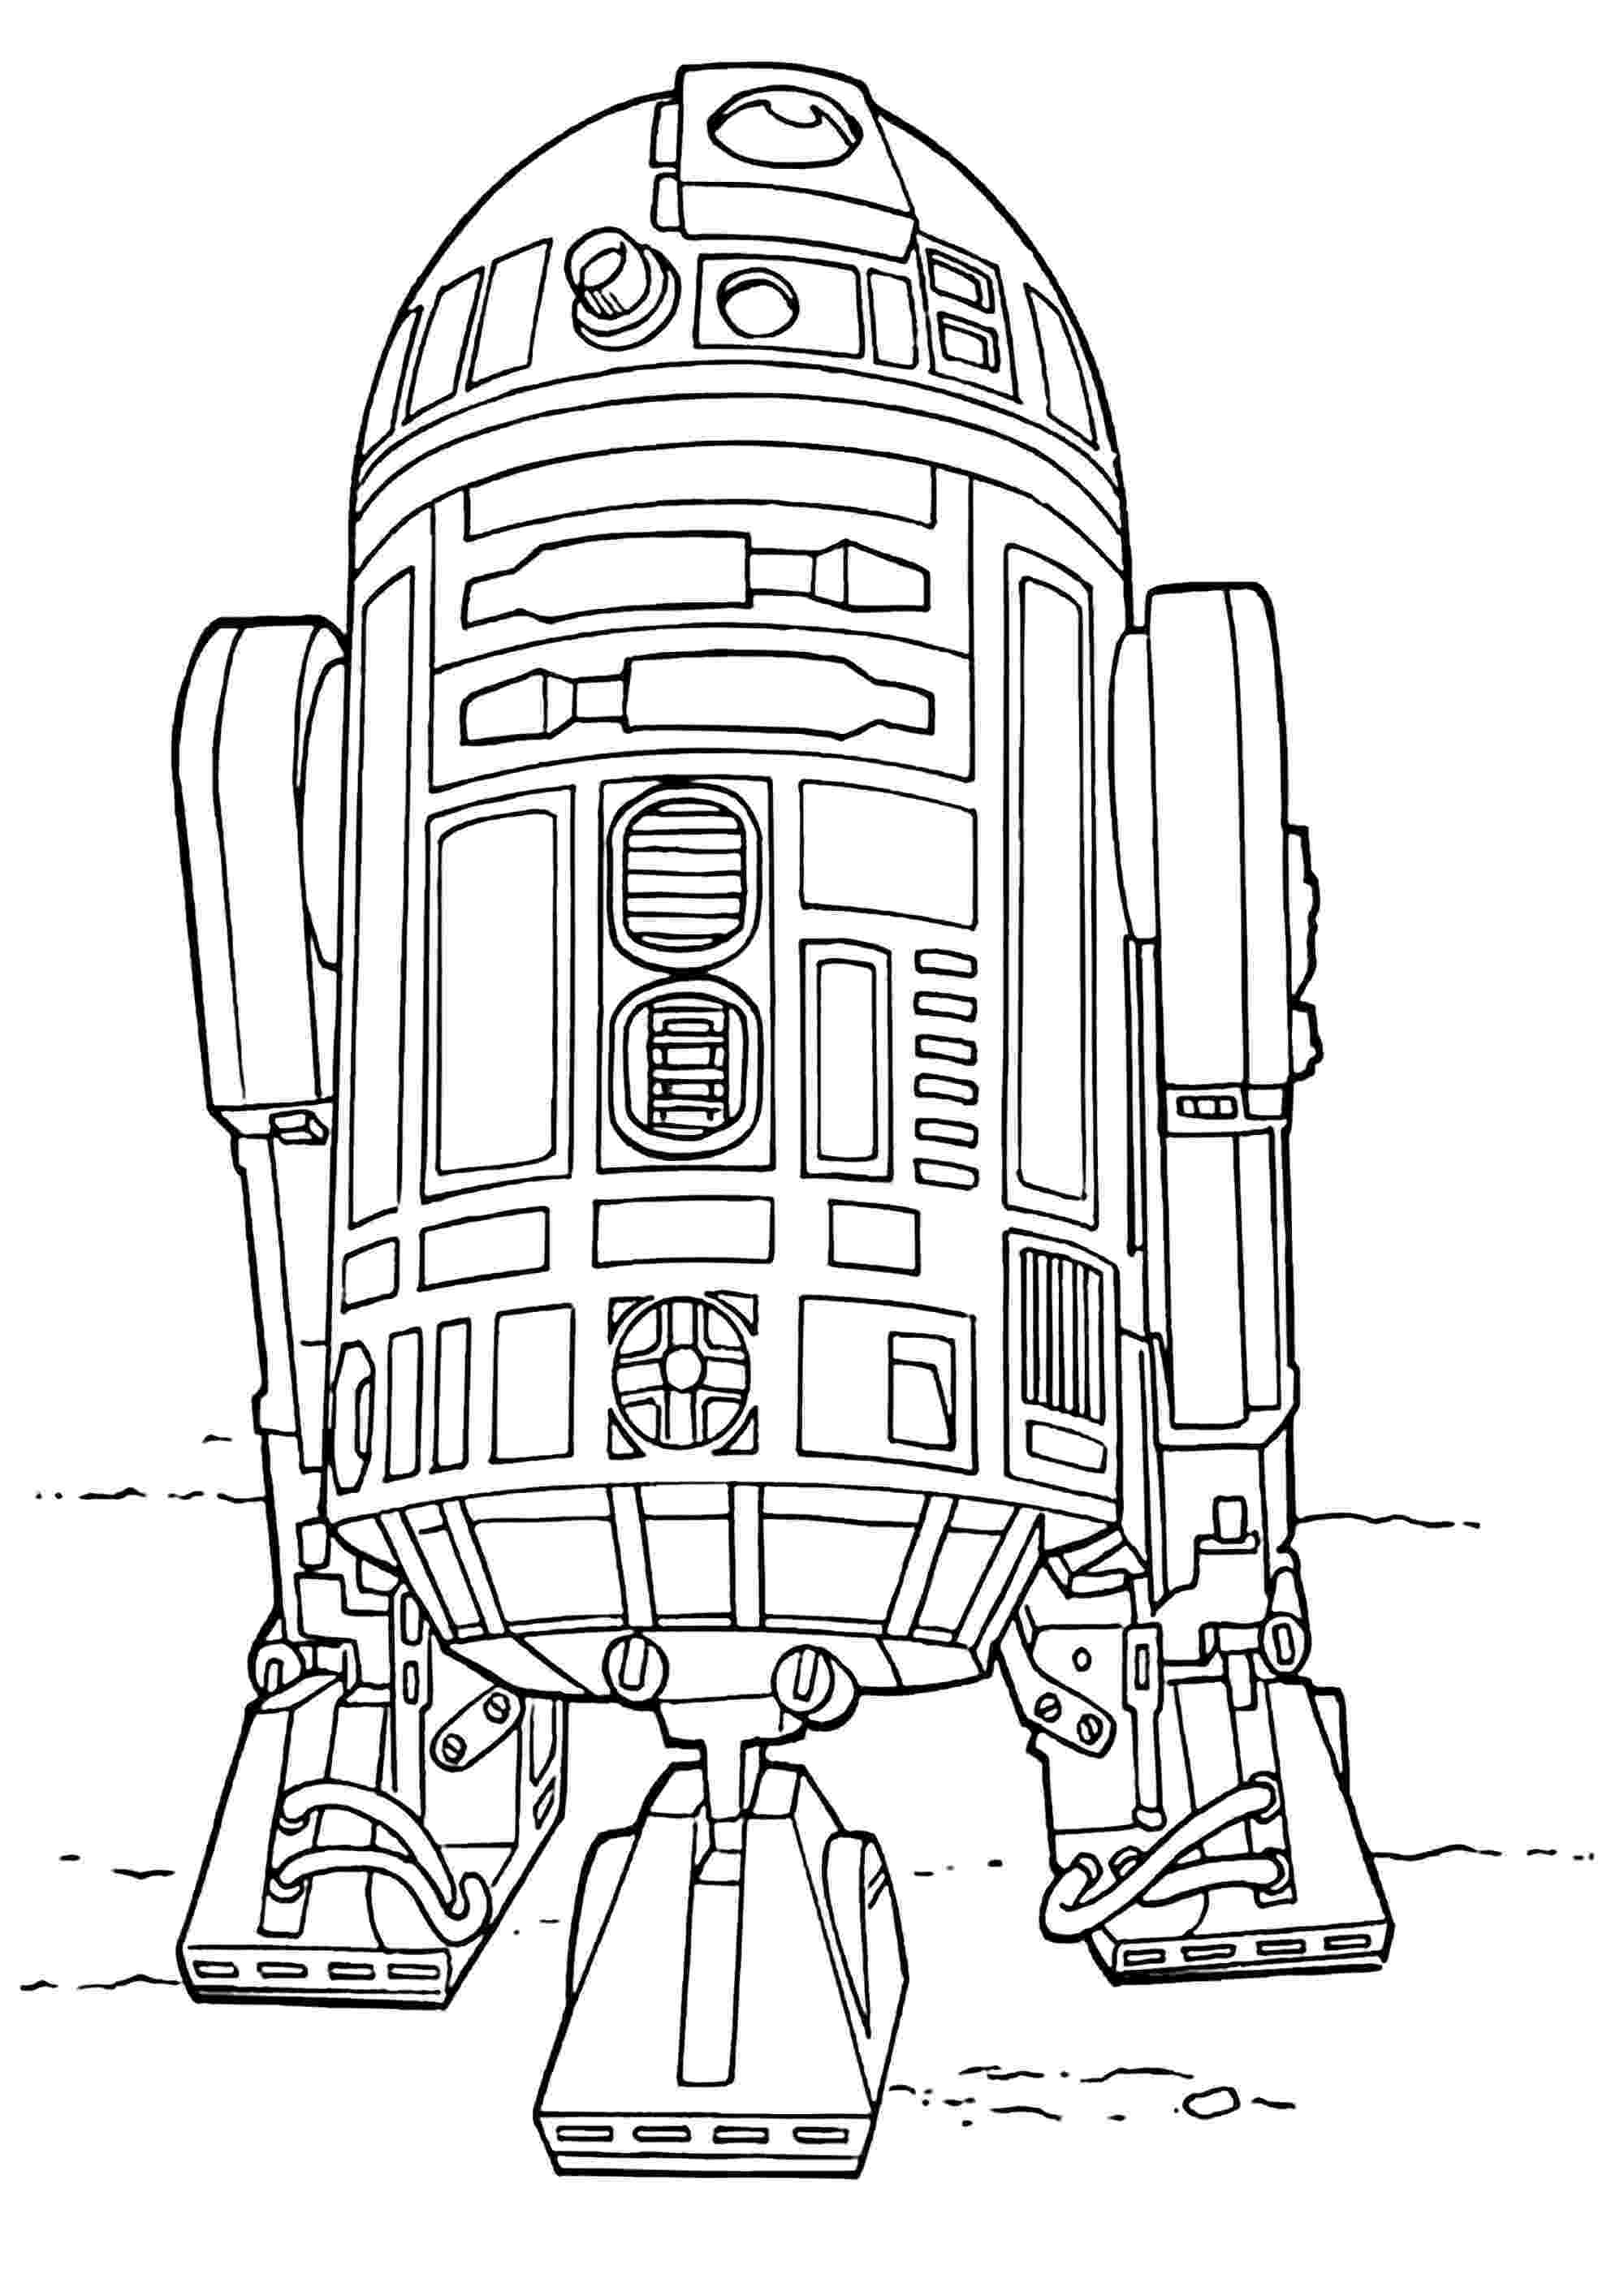 star coloring pages for preschoolers preschool programs chapter tslac pages star coloring preschoolers for